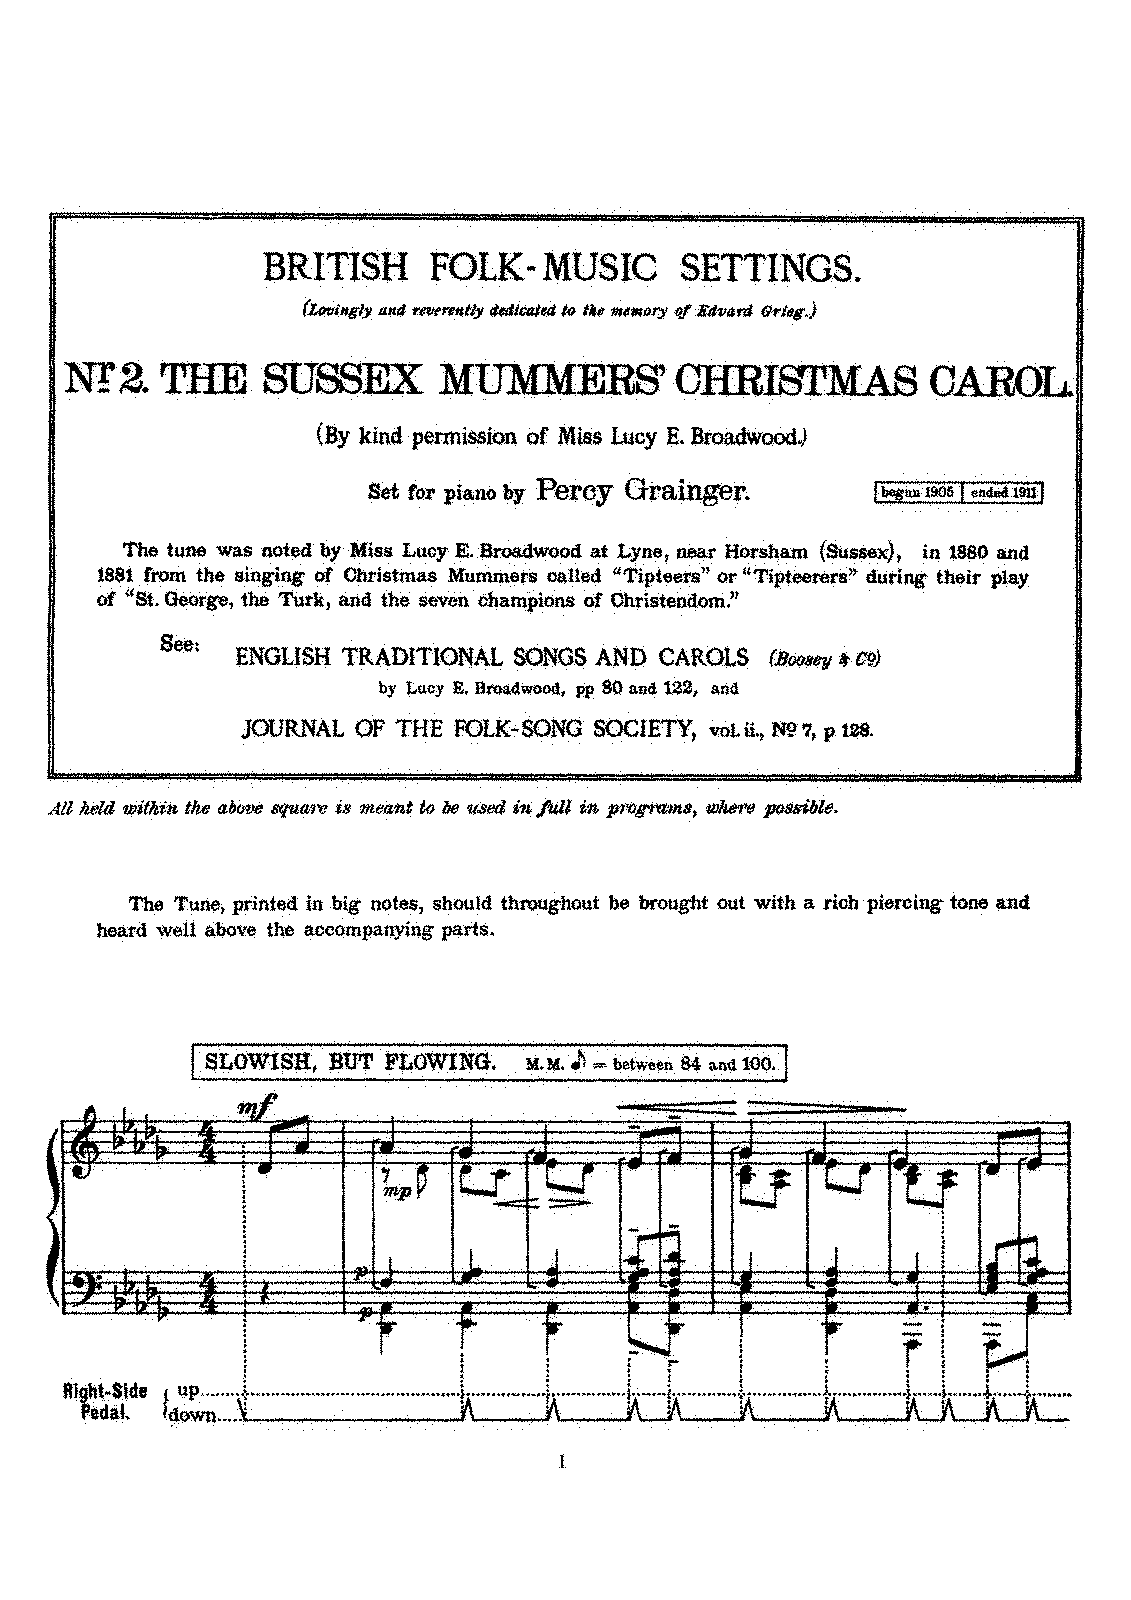 PMLP329184-Grainger - British Folk Music Settings no 2 - The Sussex Mummers' Christmas Carol - Other Edition.pdf